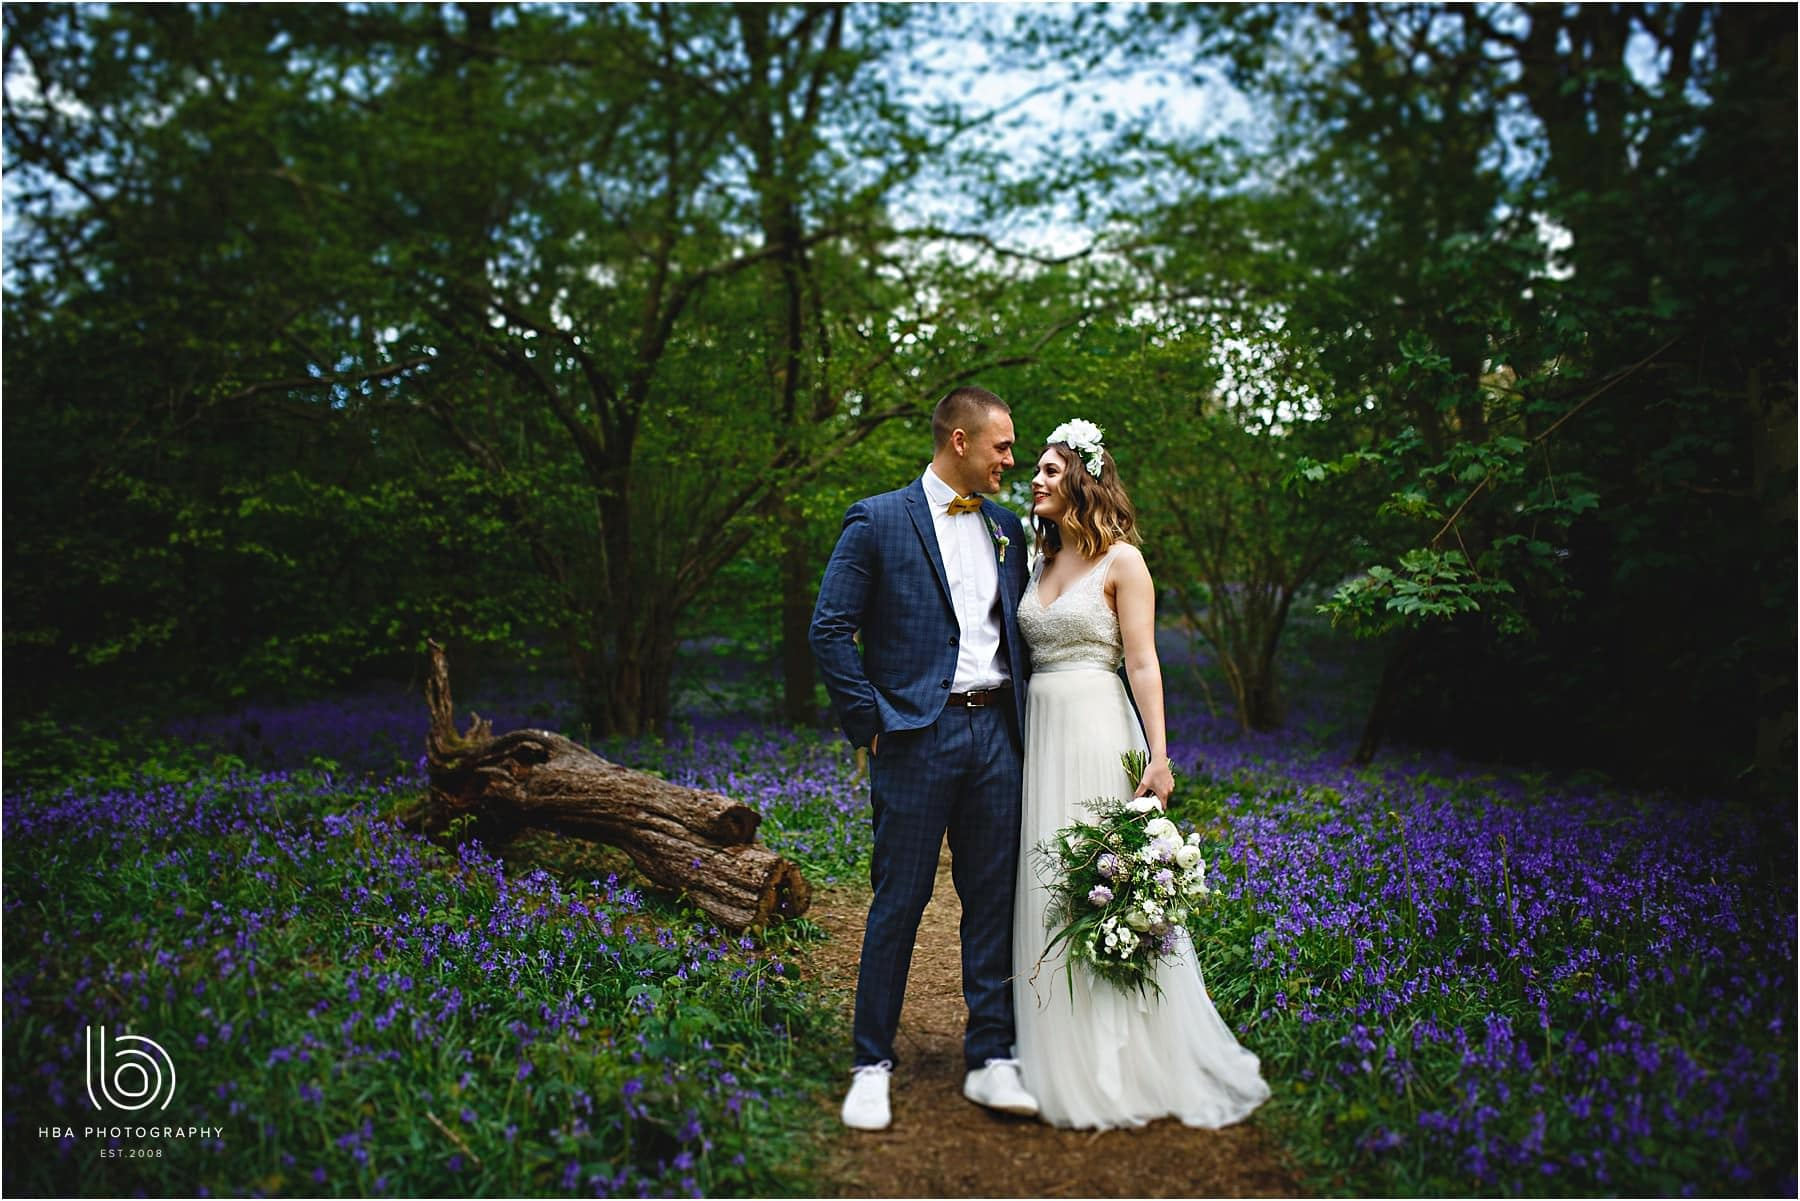 the bride and groom stood together in the bluebell woods woodland wedding